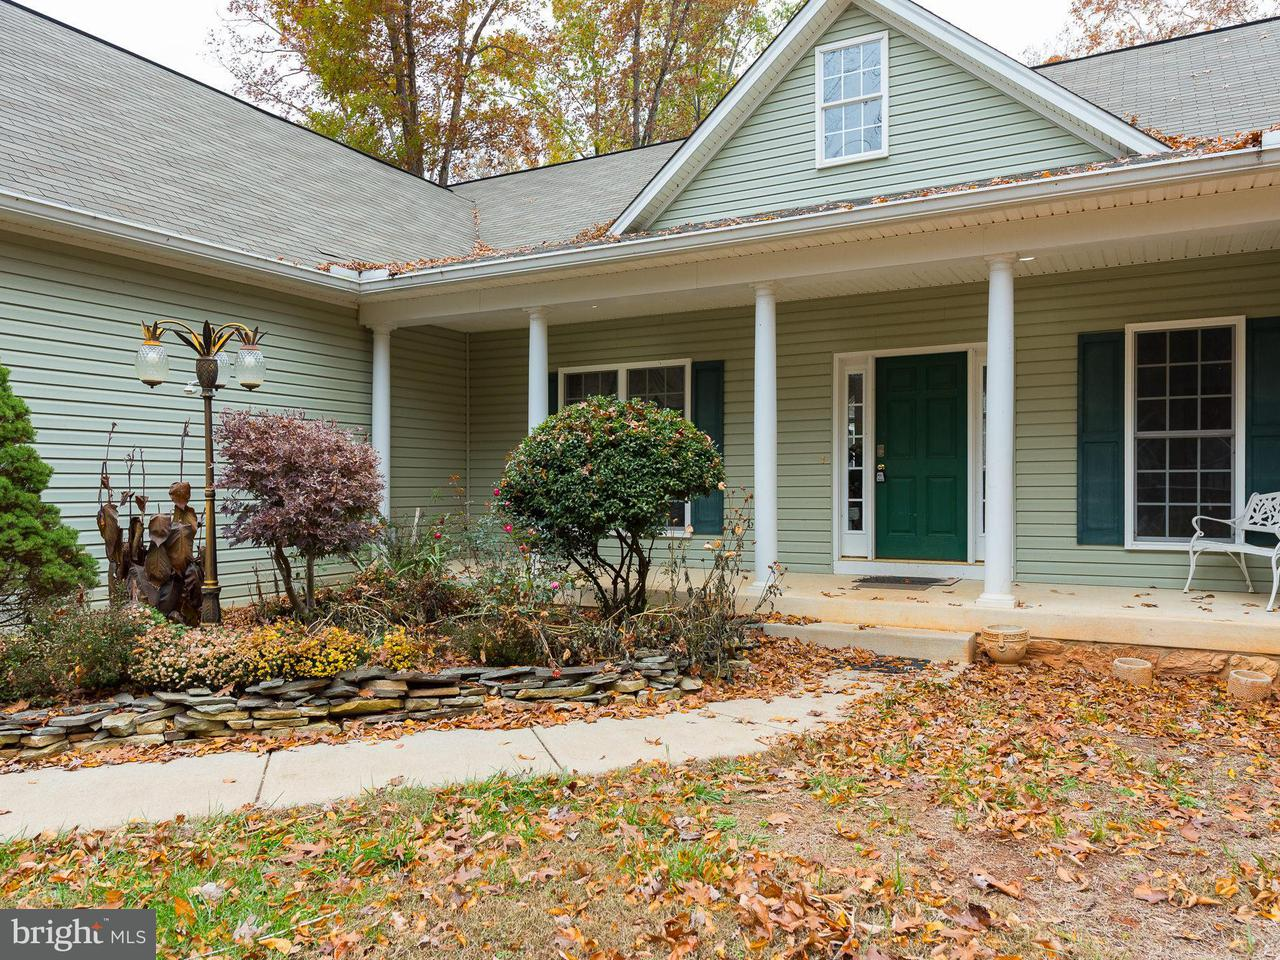 Single Family Home for Sale at 6110 HIDDEN VIEW Drive 6110 HIDDEN VIEW Drive Mineral, Virginia 23117 United States